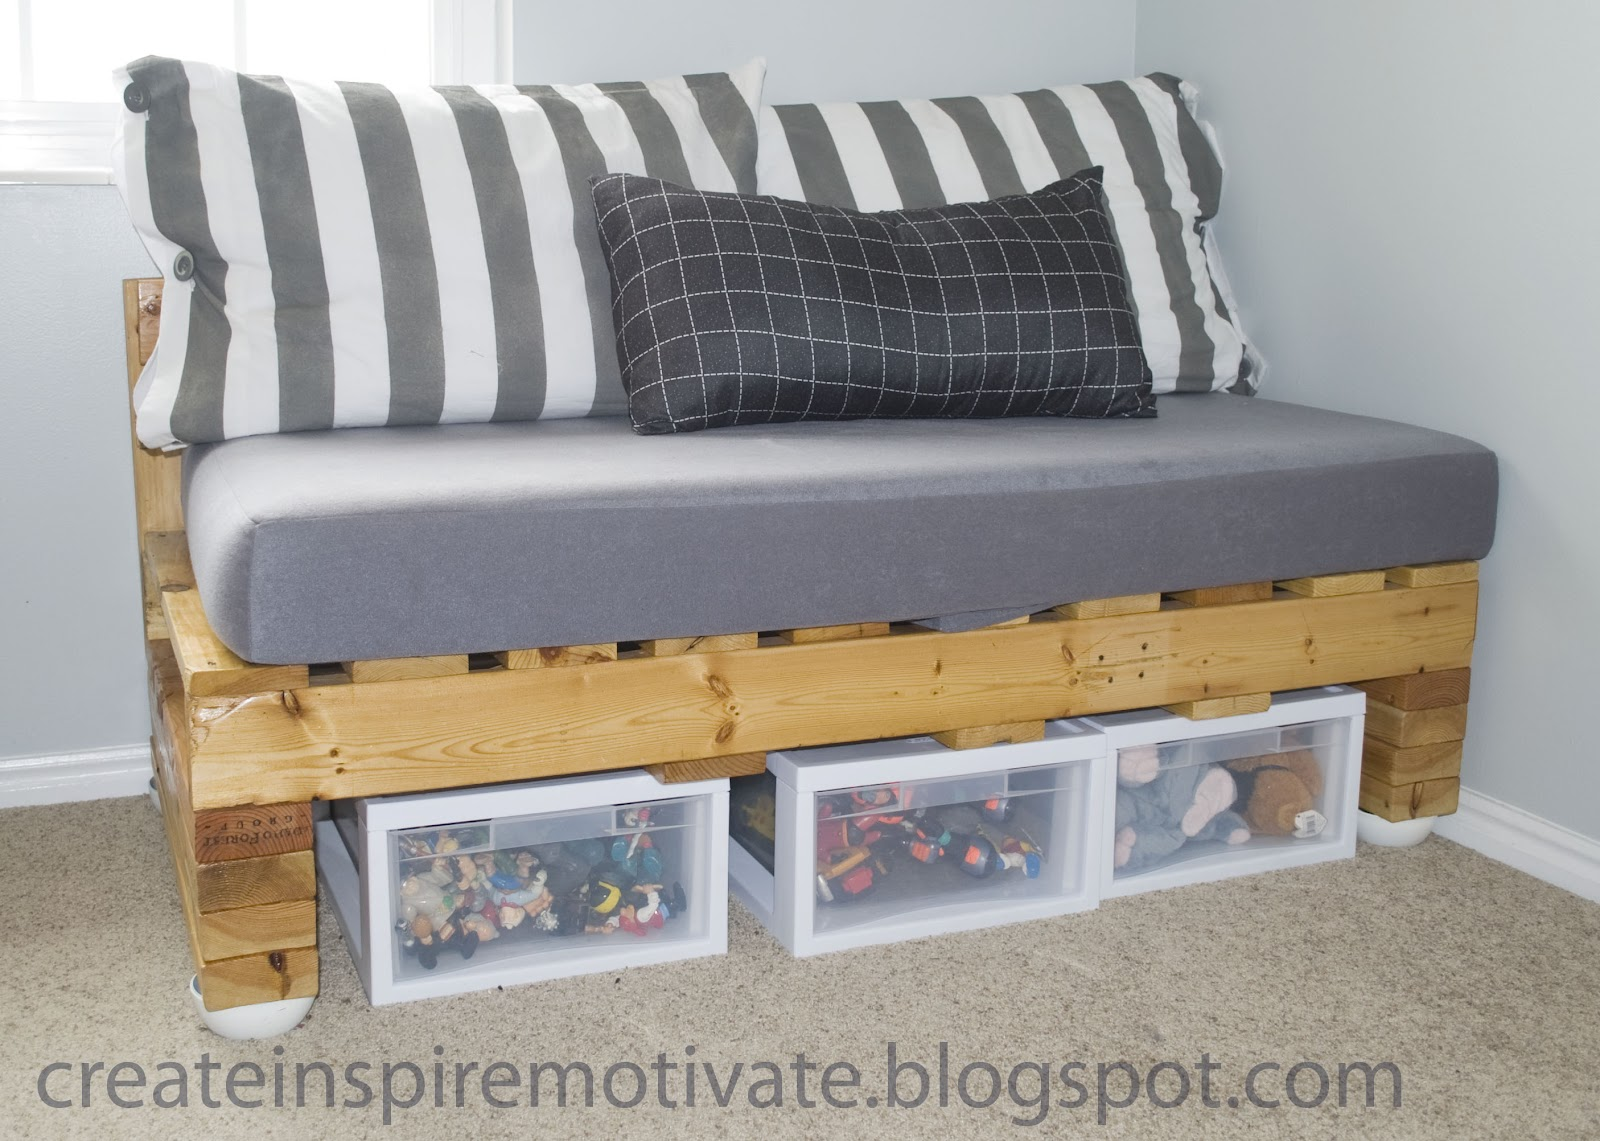 Diy Sofa From Pallets Fabric Washing Machine Loft Bed By Joanne S T A R D U Decor And Style